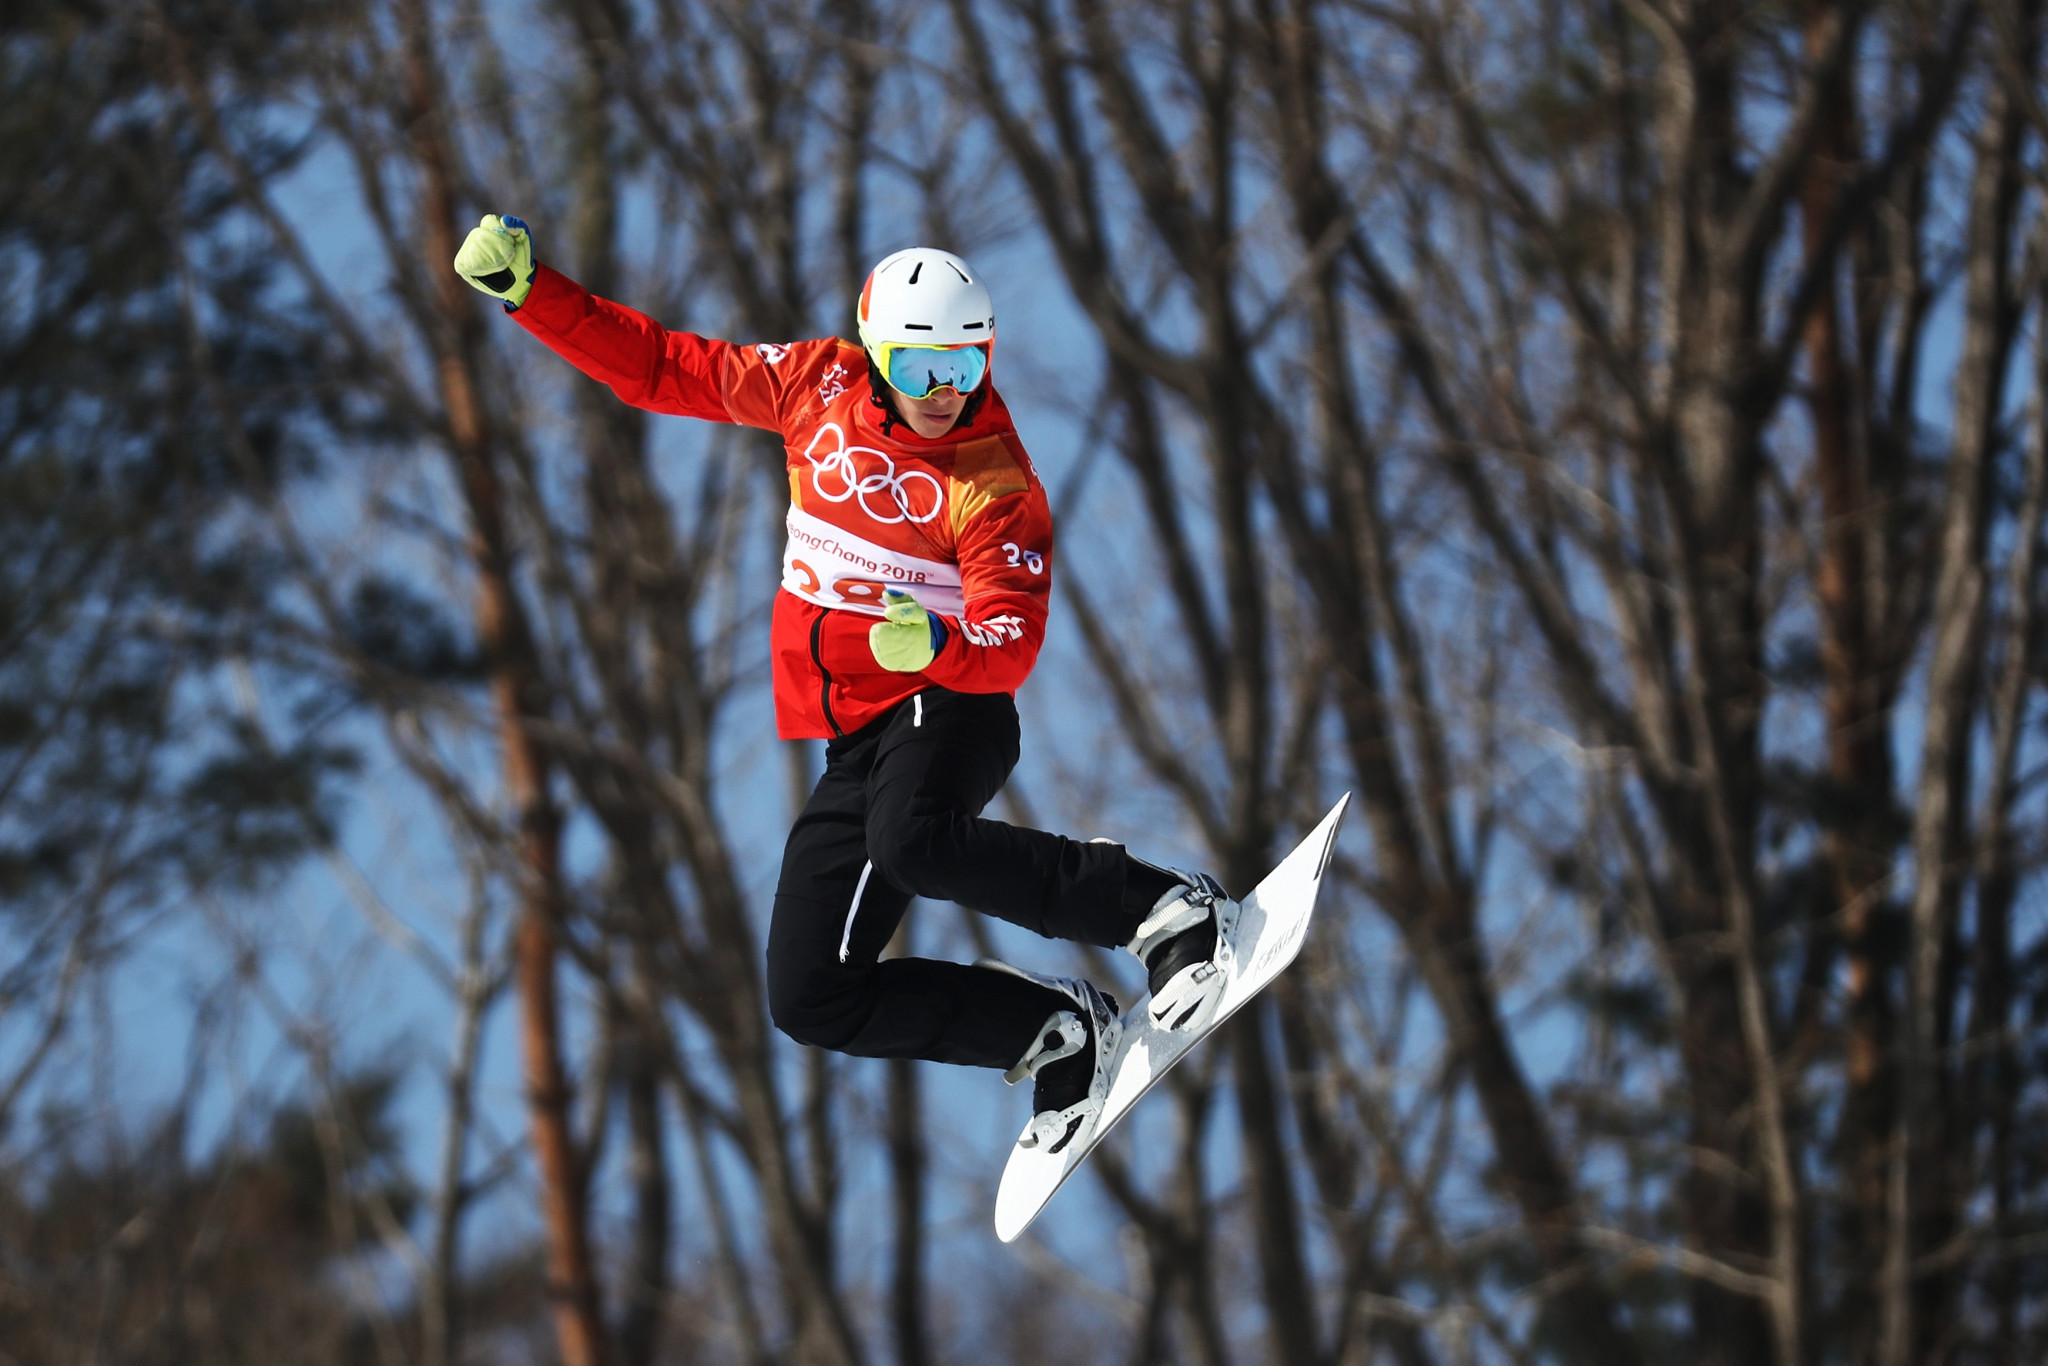 Grondin and Brutto top first Snowboard Cross World Cup qualifying of the season